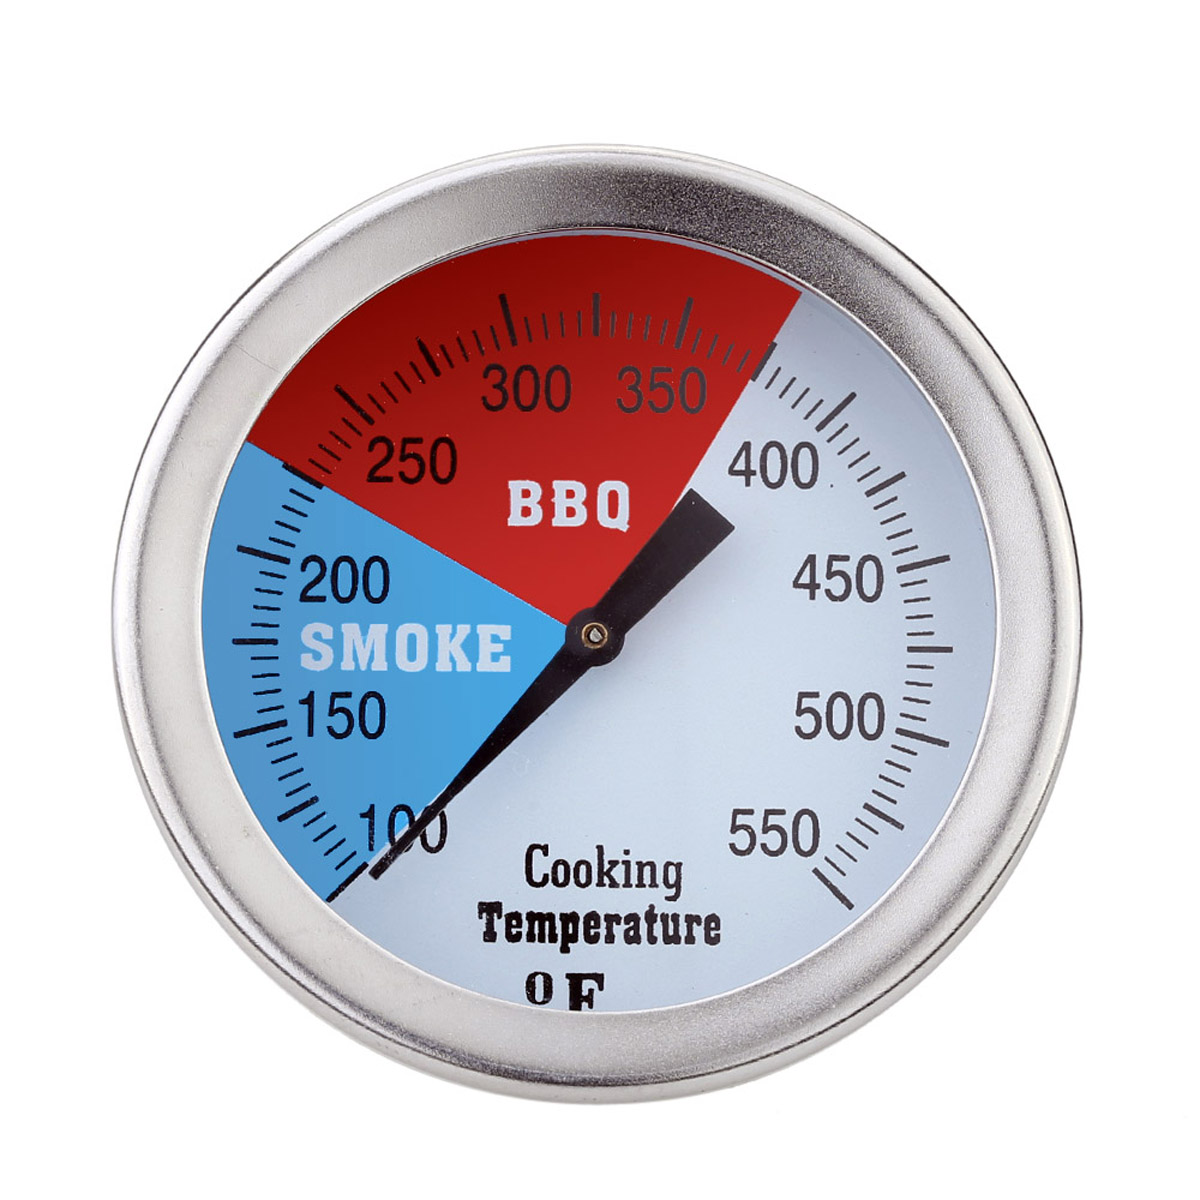 Food Thermometer Big W Kitchen Big Dial Oven Thermometer Cooking Temperature